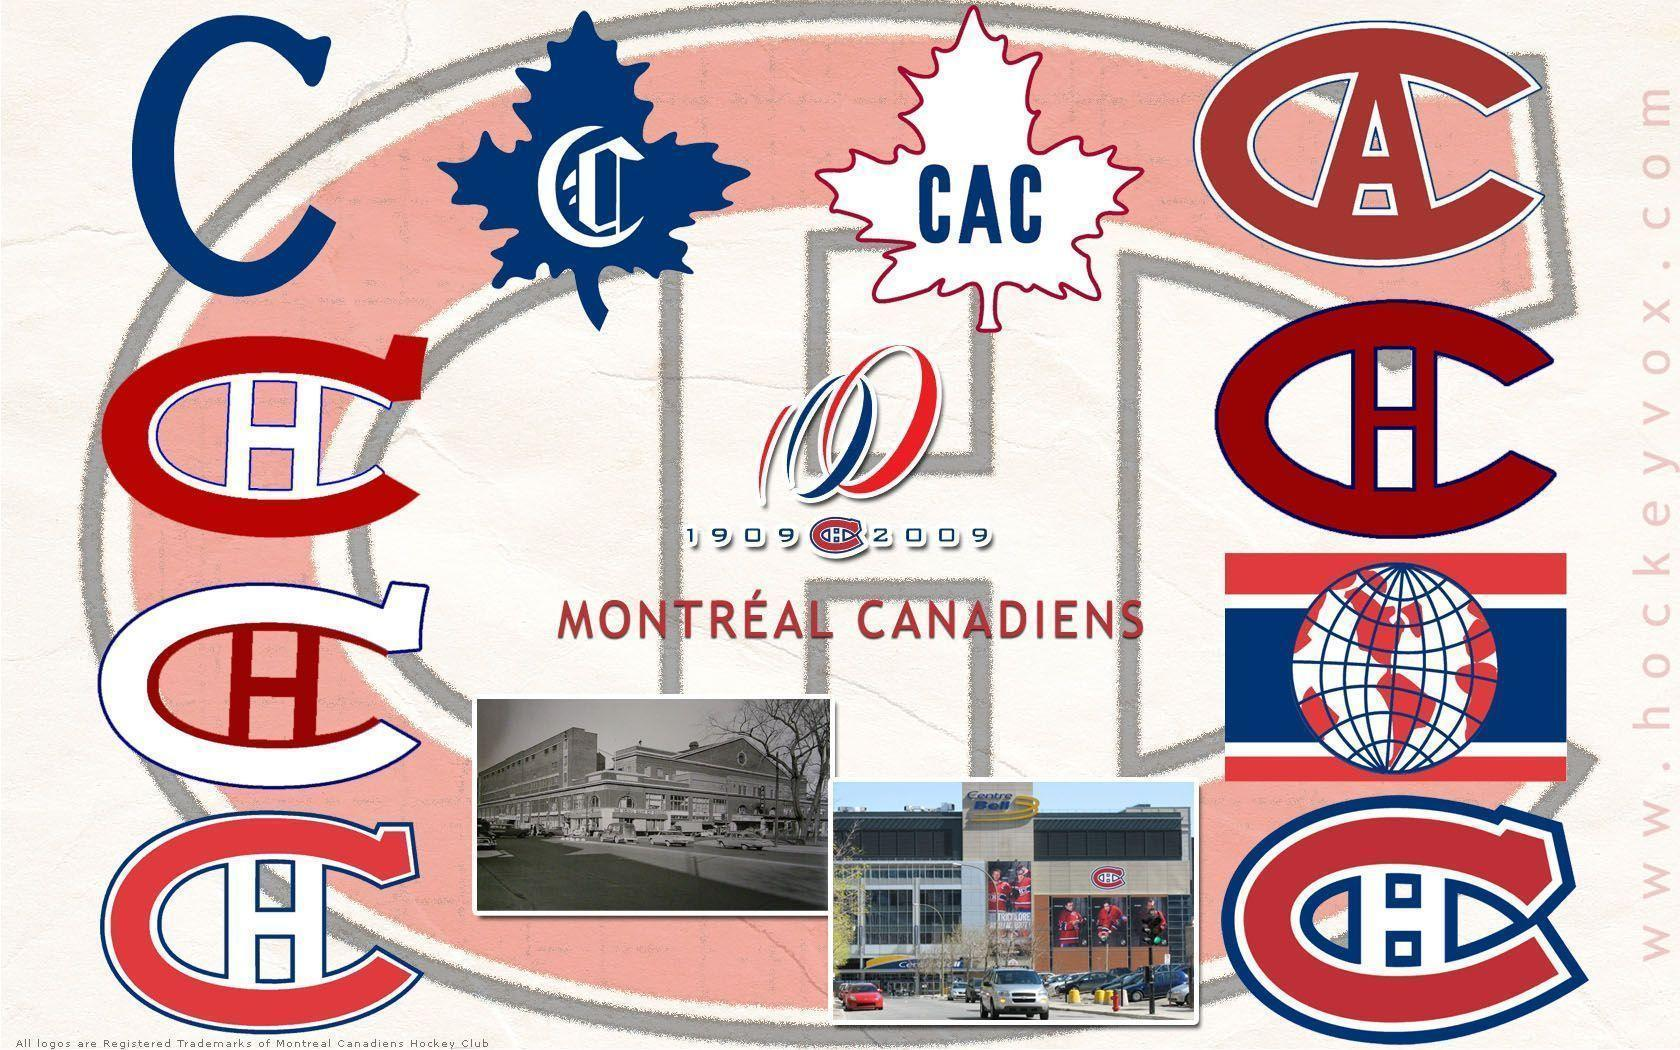 Montreal Canadiens backgrounds